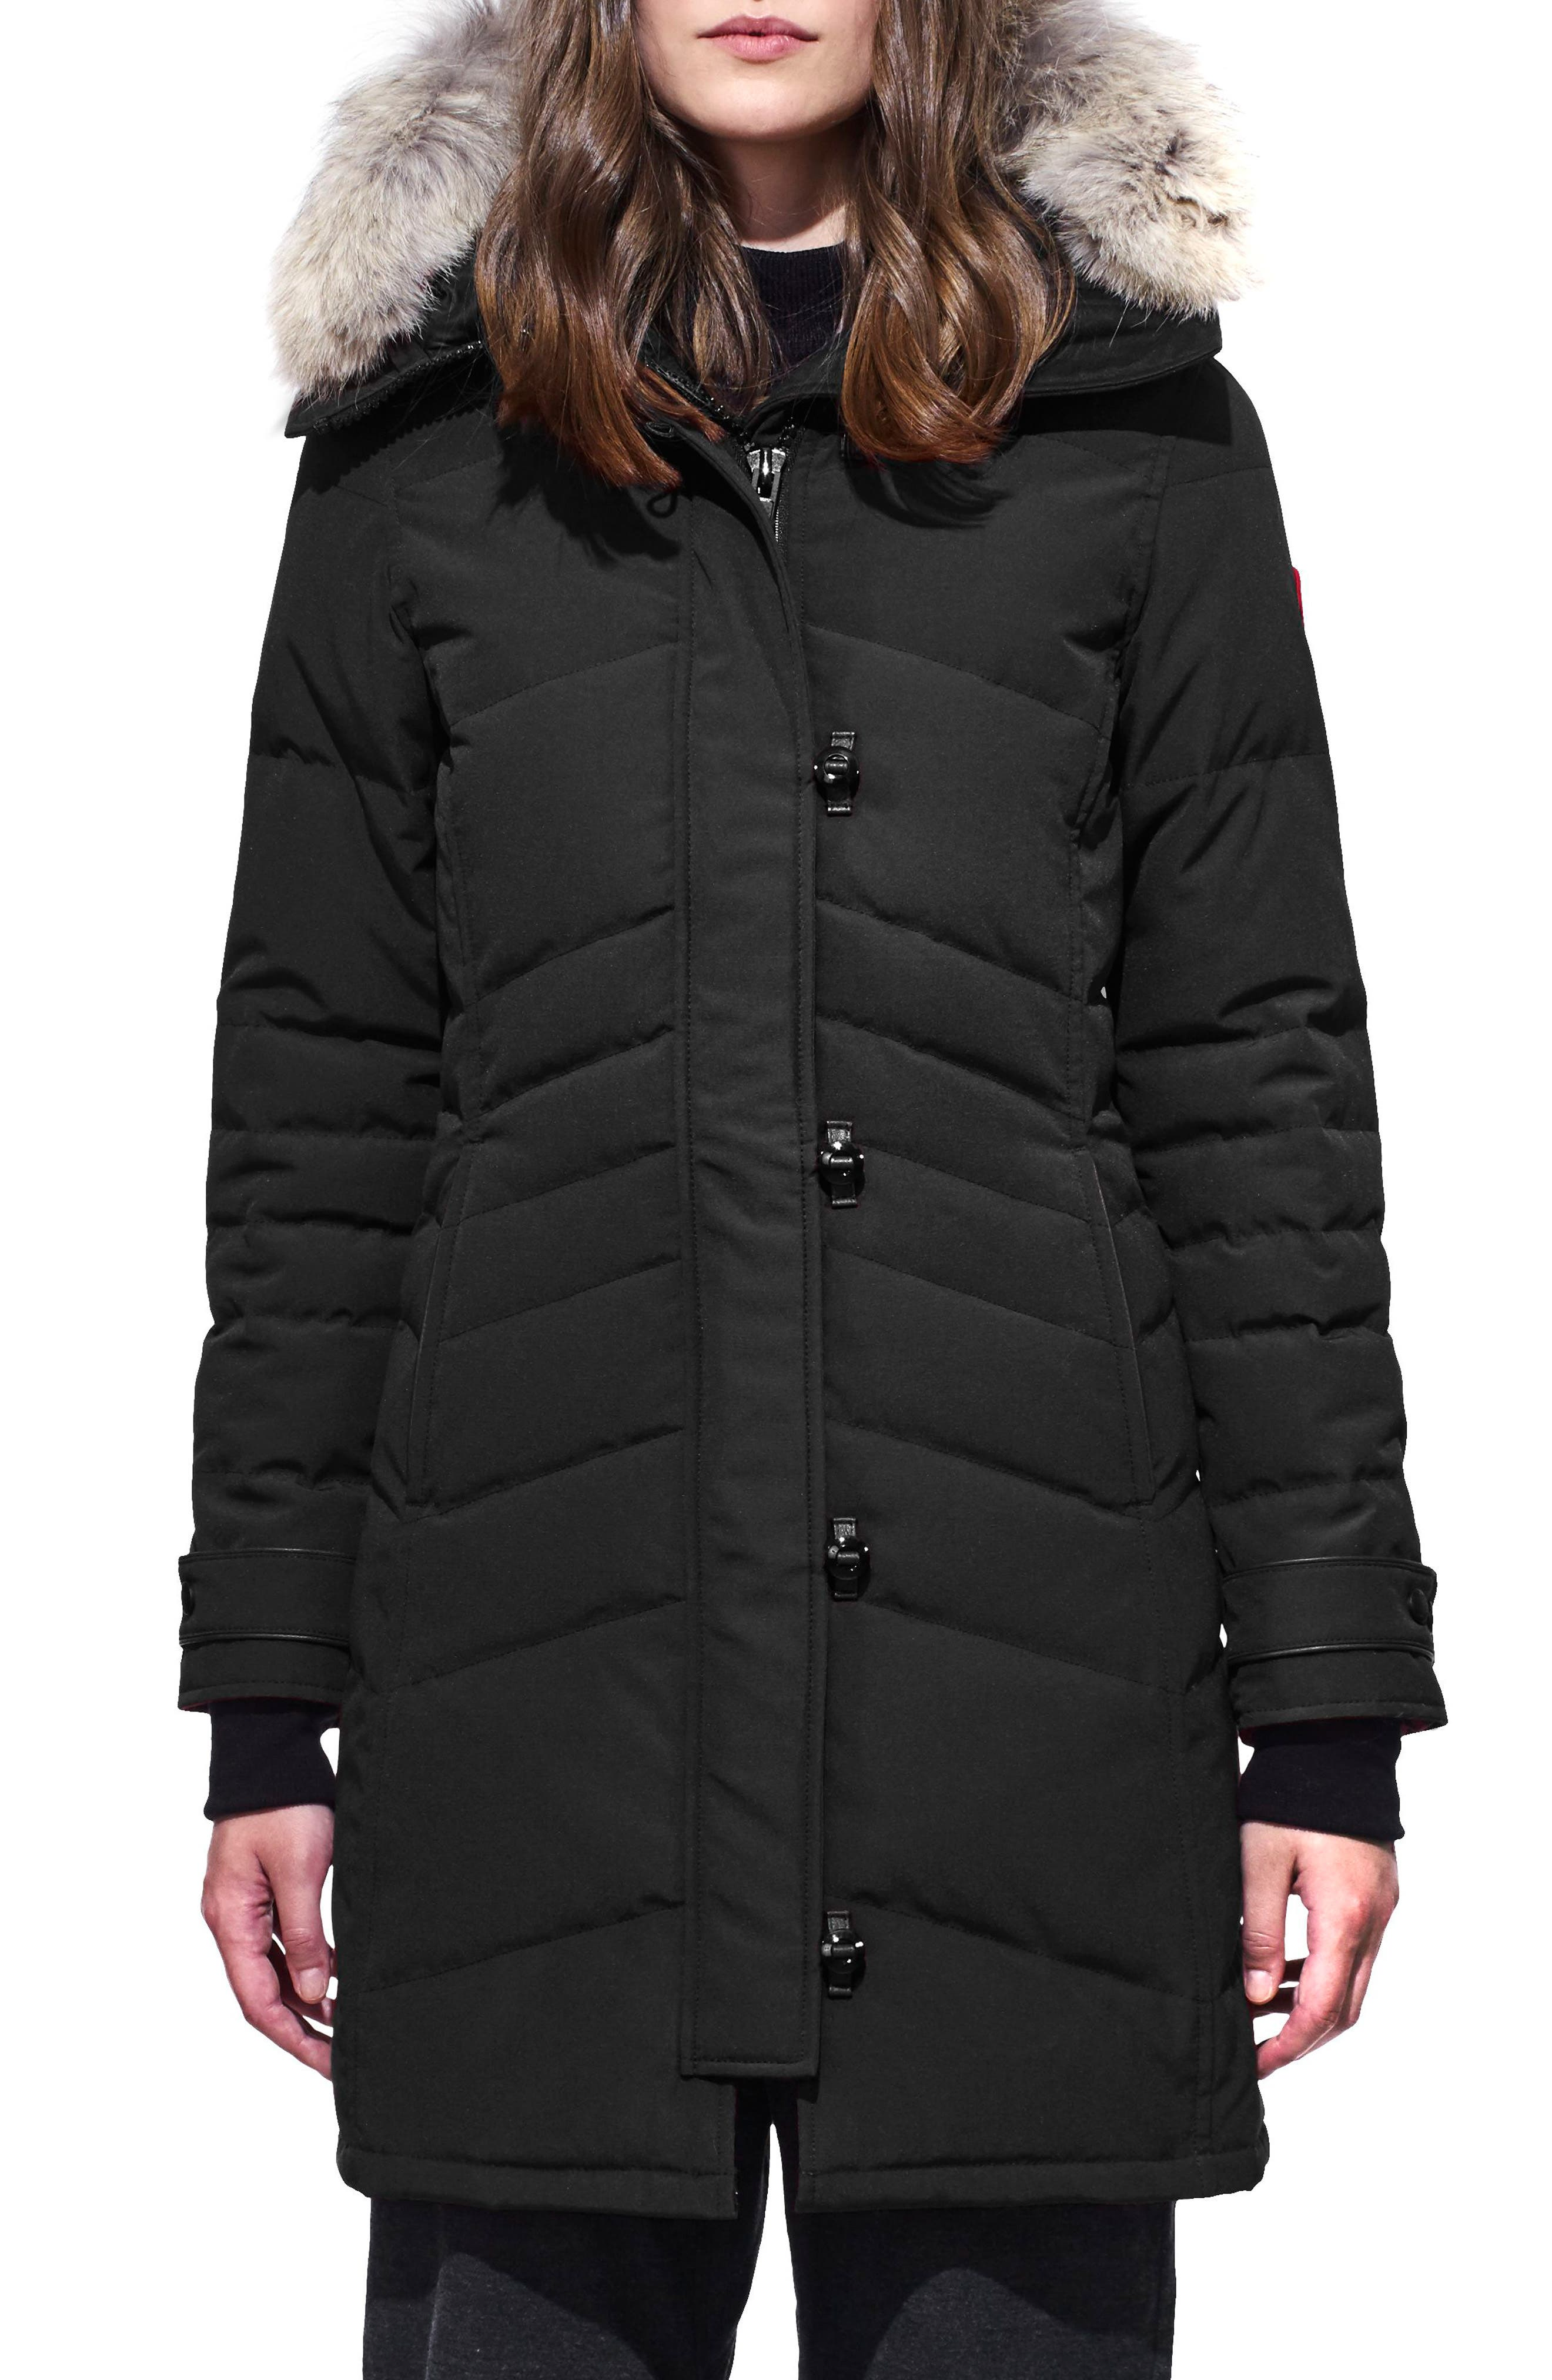 Lorette Fusion Fit Hooded Down Parka with Genuine Coyote Fur Trim,                         Main,                         color, 001